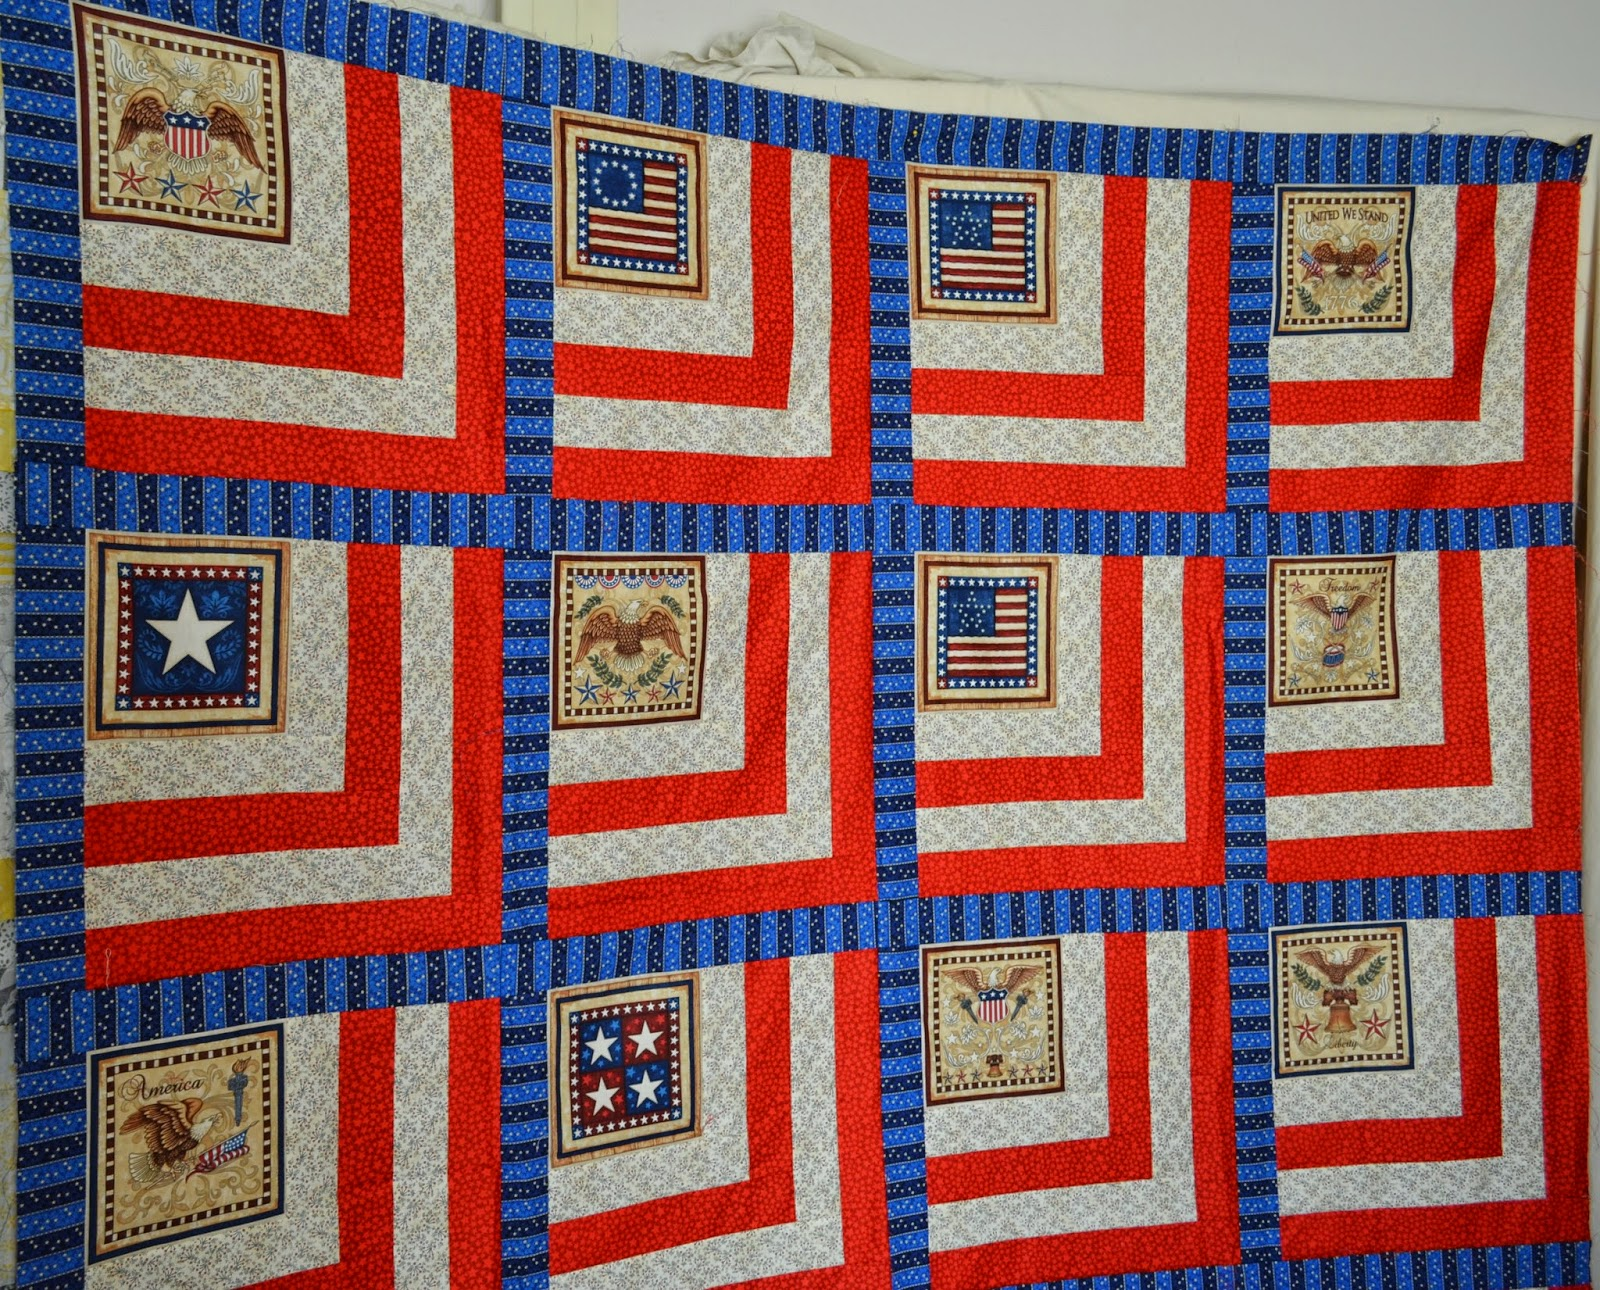 Quilt Patterns For Quilts Of Valor : Attic Threads & Quilts: Quilts of Valor Panel Pattern